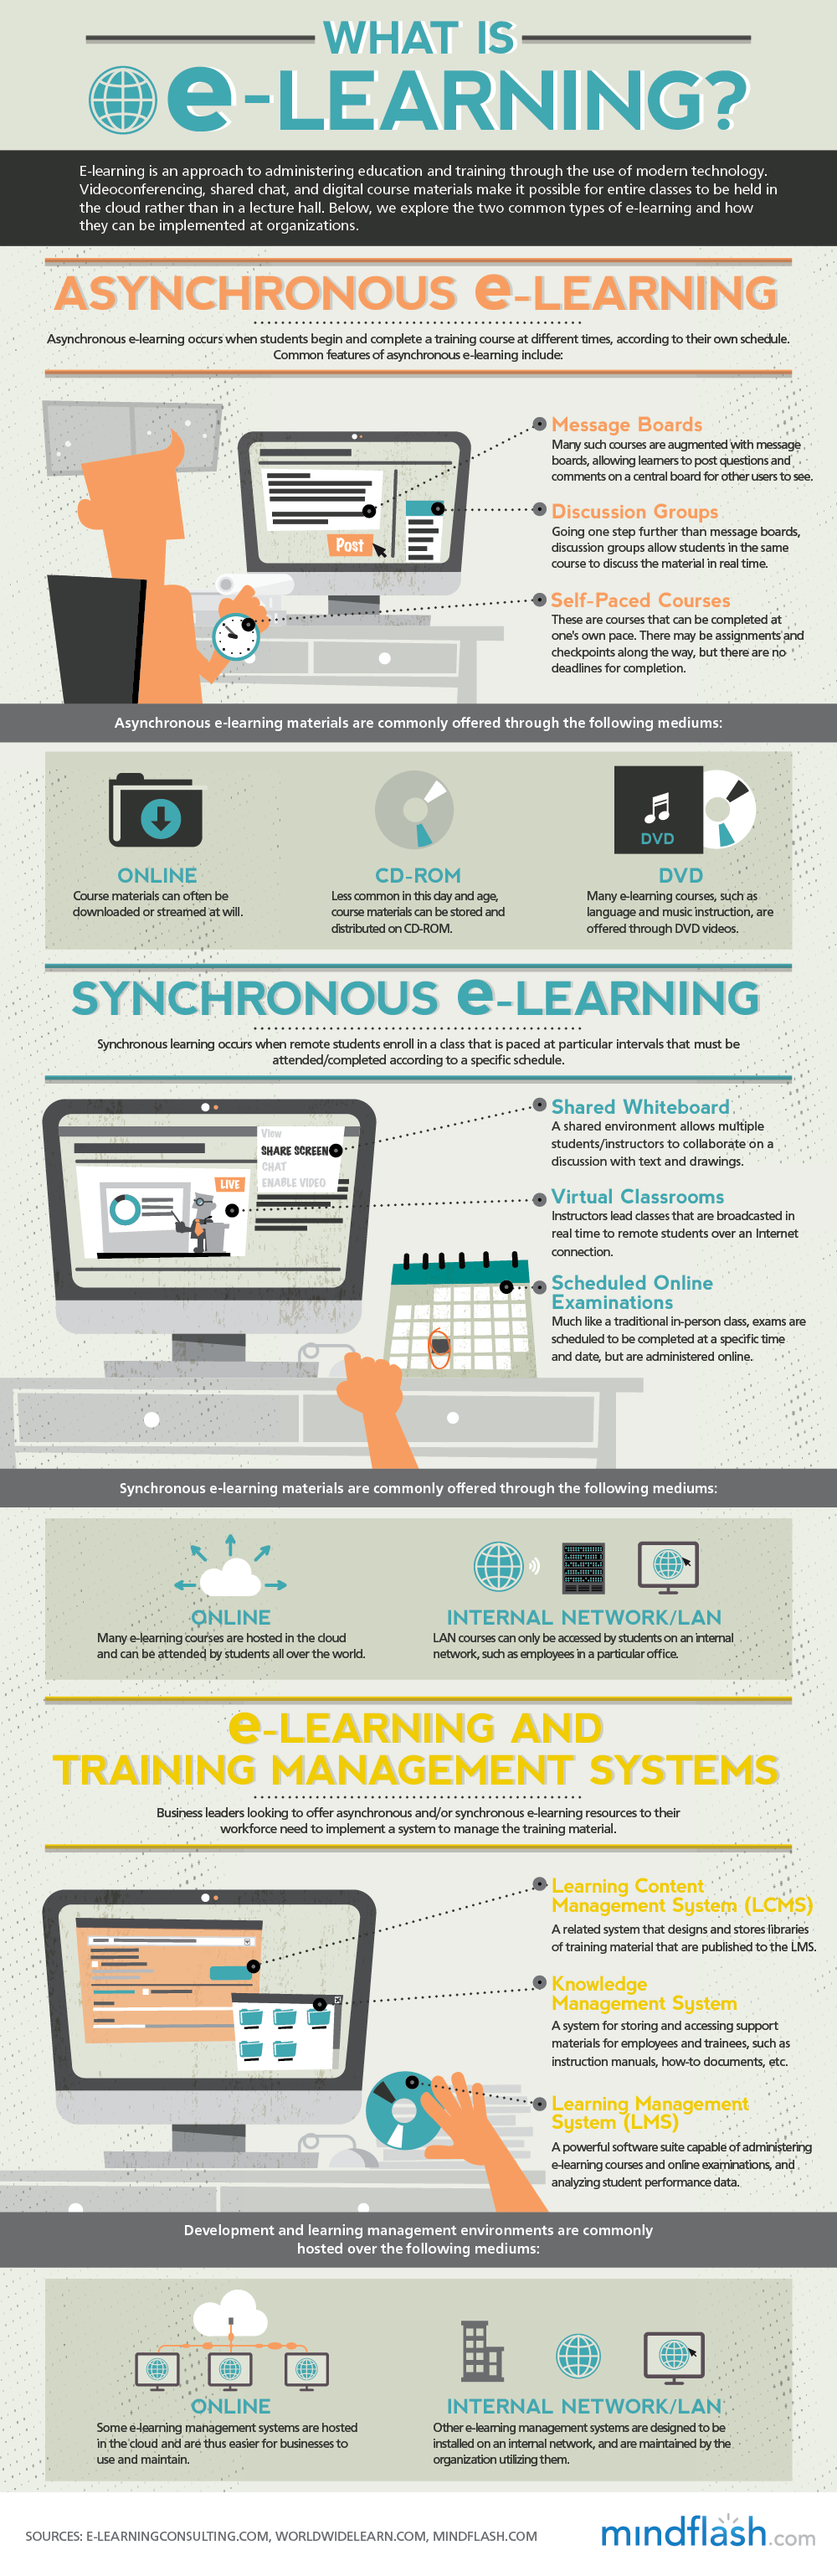 Asynchronous E-learning vs. Synchronous E-learning